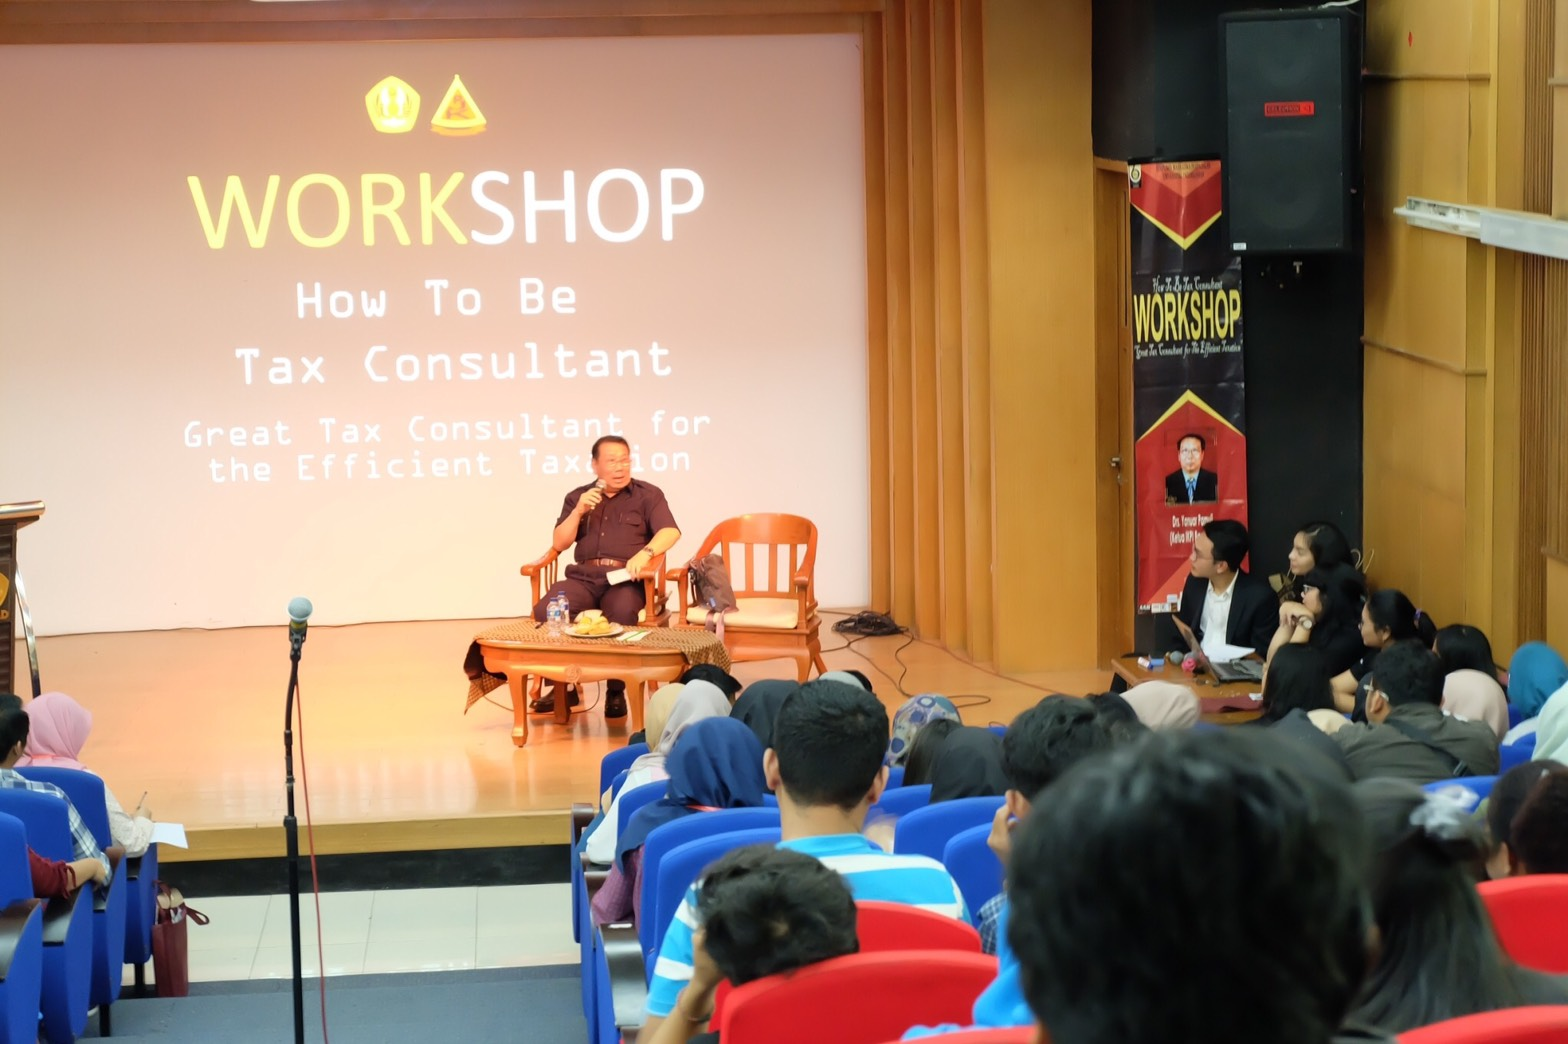 Tax Workshop